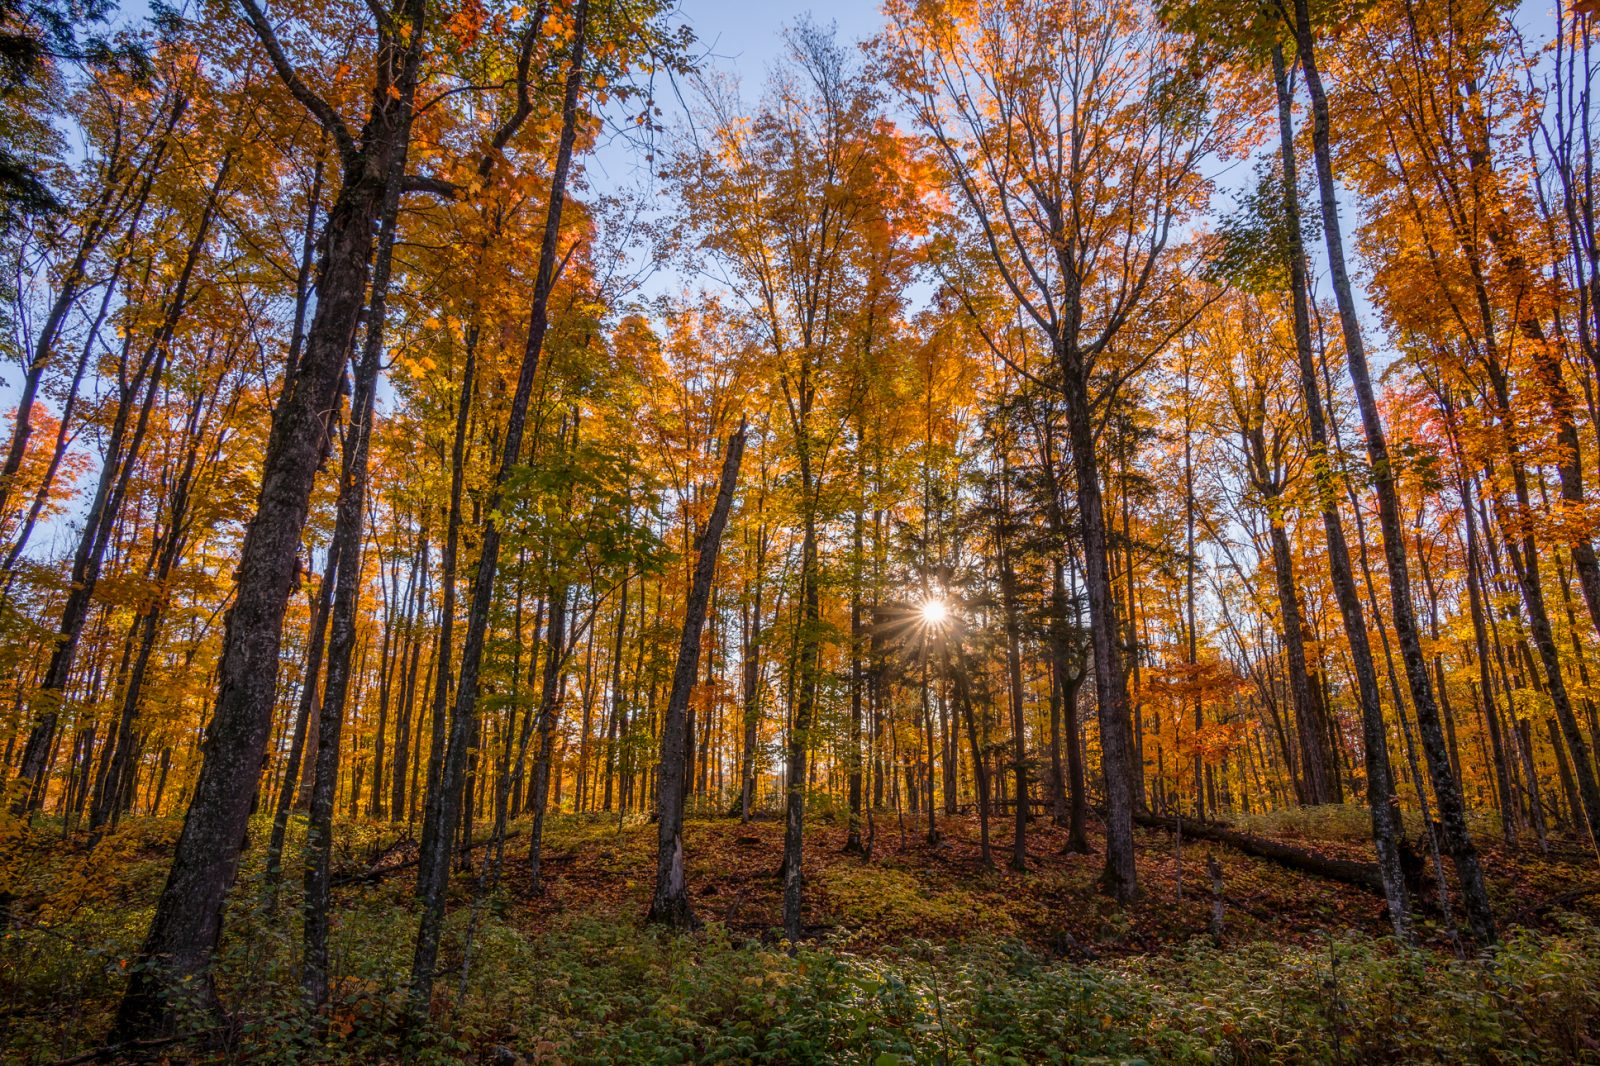 Autumn Color in the Northwoods